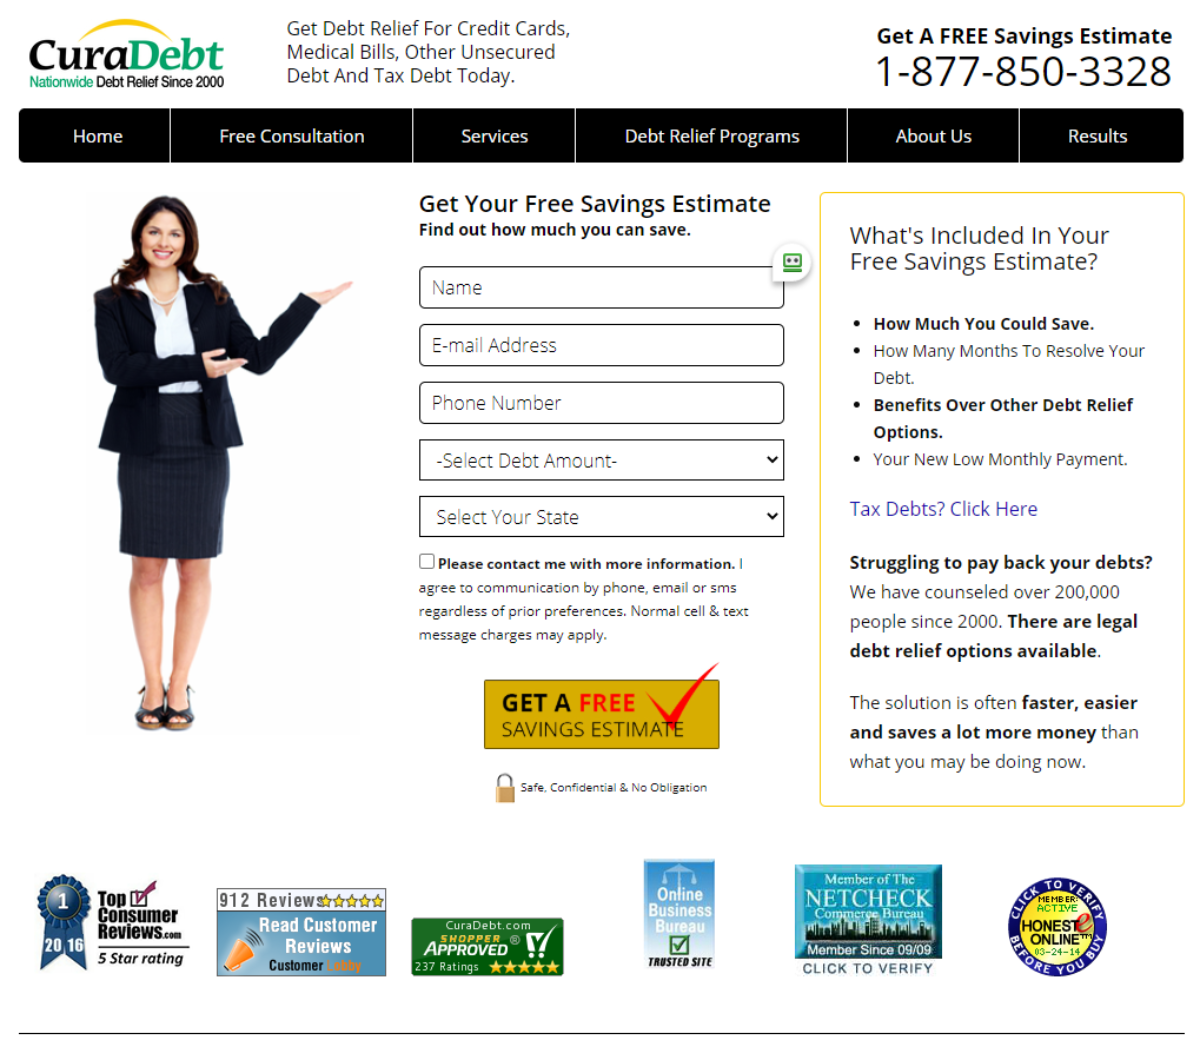 This is a screenshot taken from the Curadebt.com website where people can help with IRS tax debt relief.